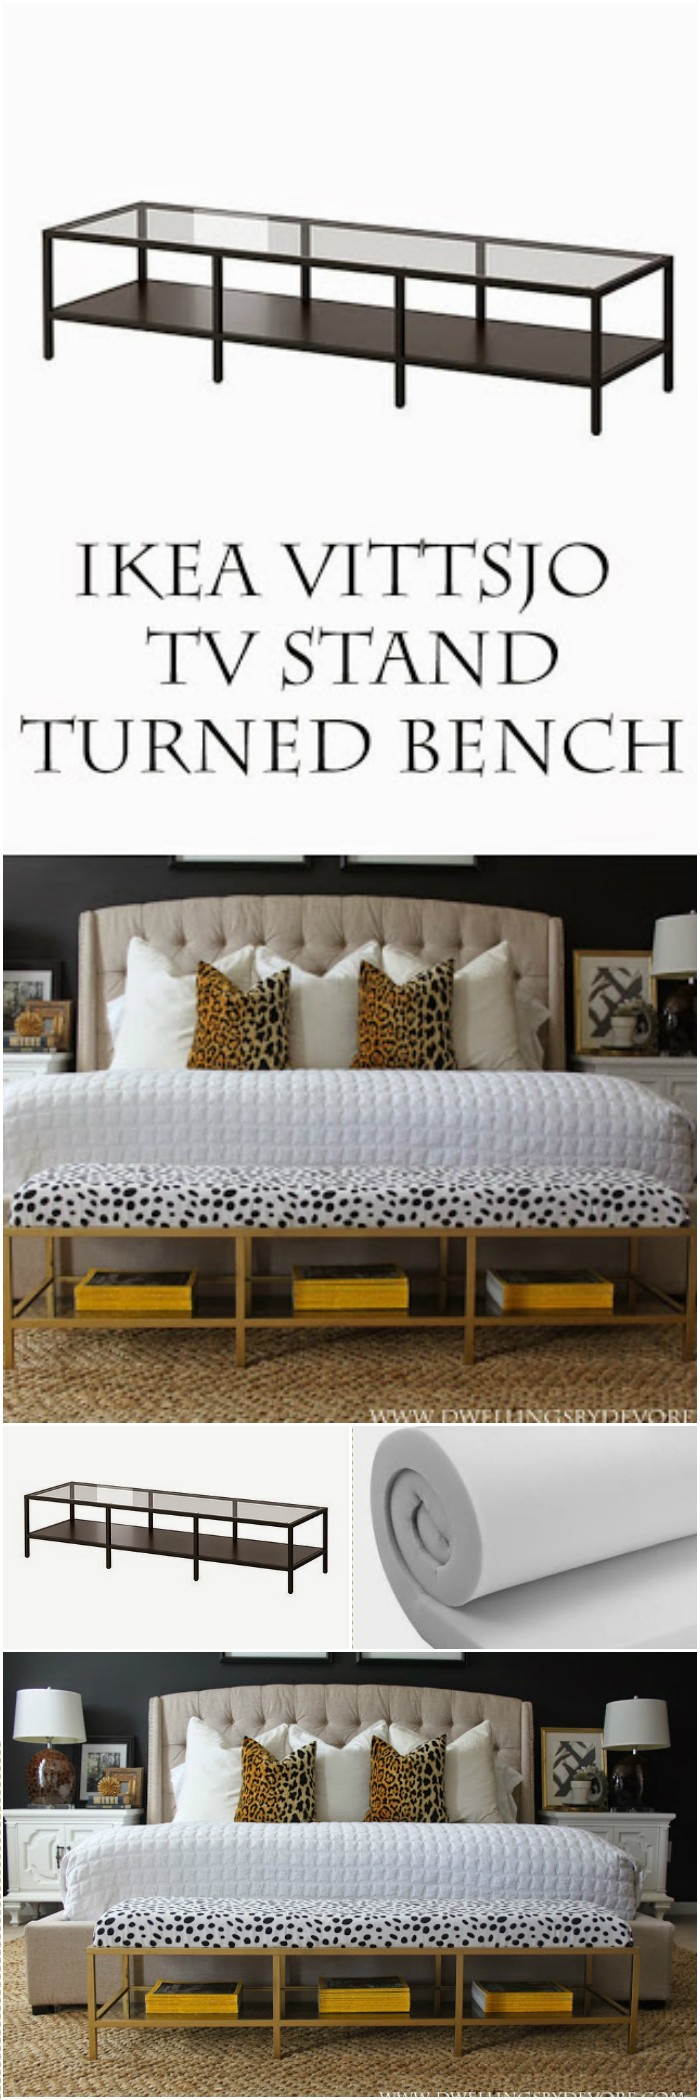 Gold Upholstered Bench Tutorial 1 IKEA Hacks For Your Home Decor